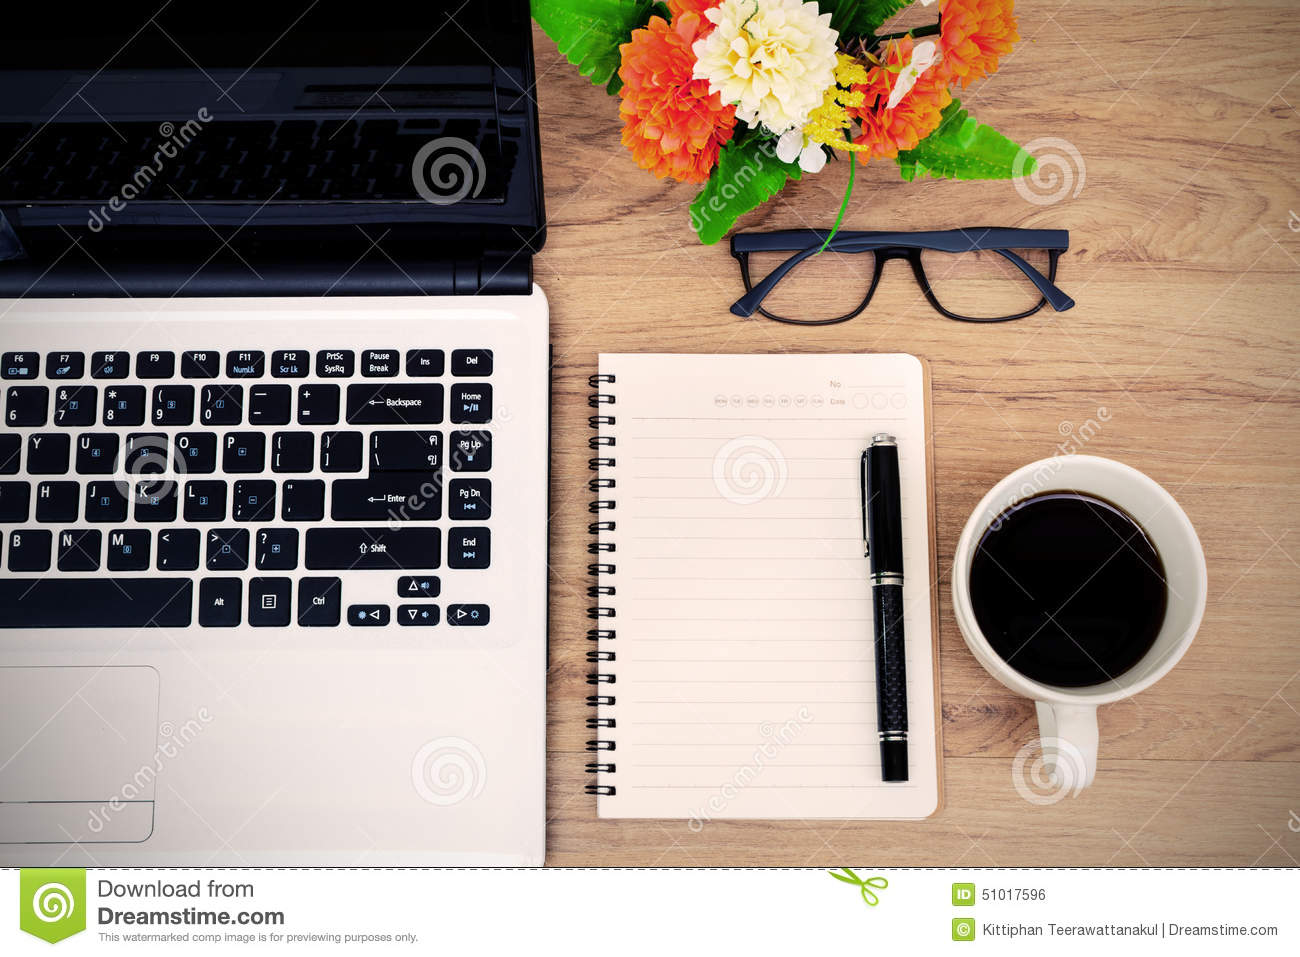 Amazing Laptop And Cup Of Coffee With Flower On Desk. Table, Notebook. Amazing Ideas